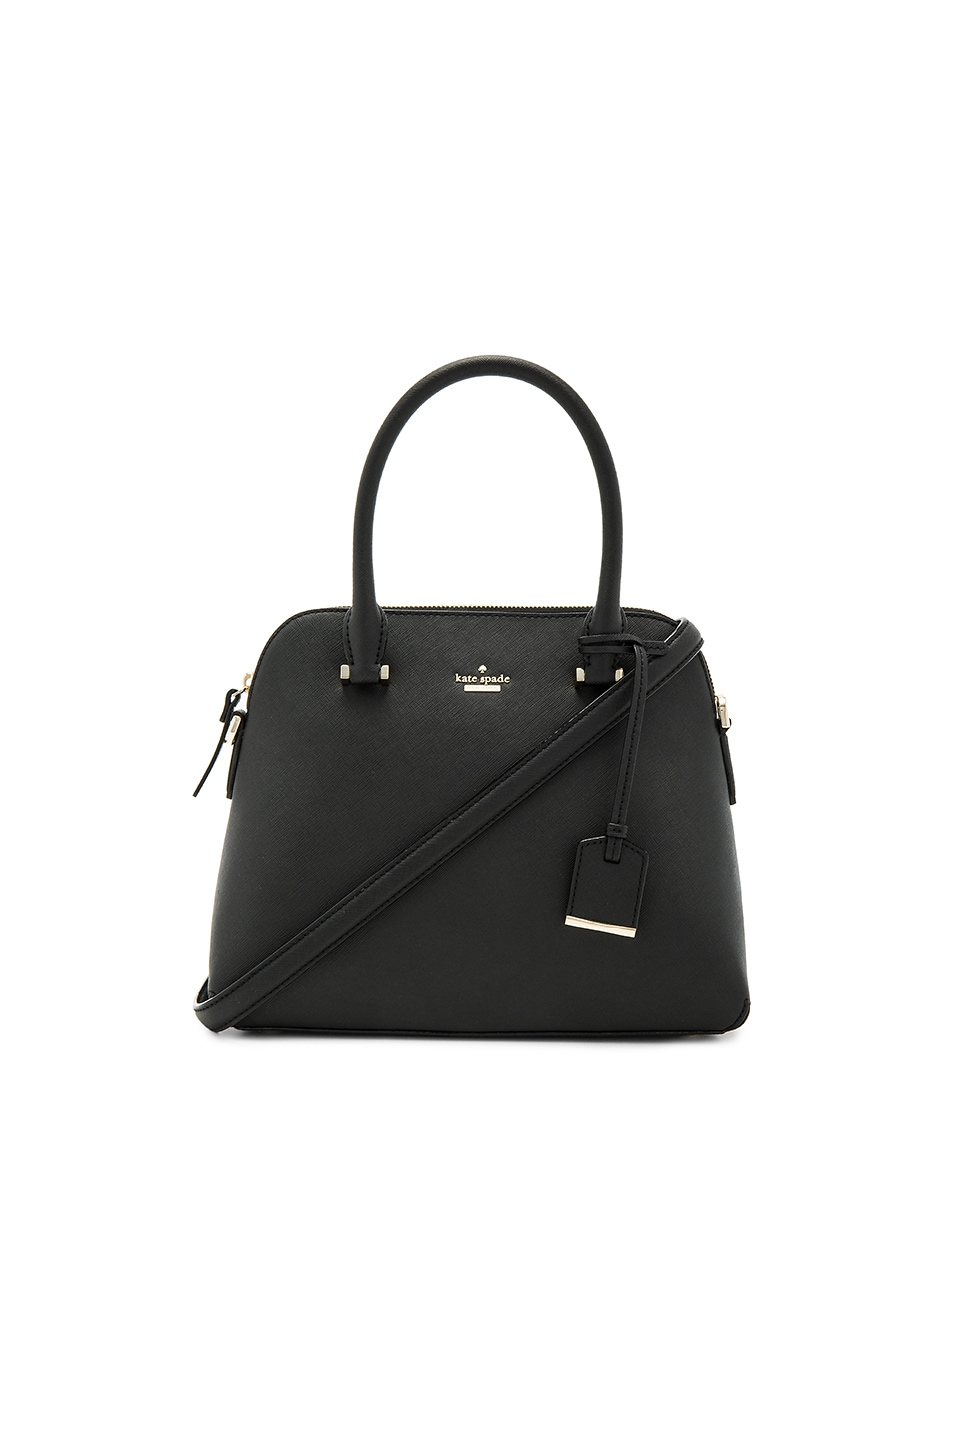 kate spade new york Maise Satchel in Black